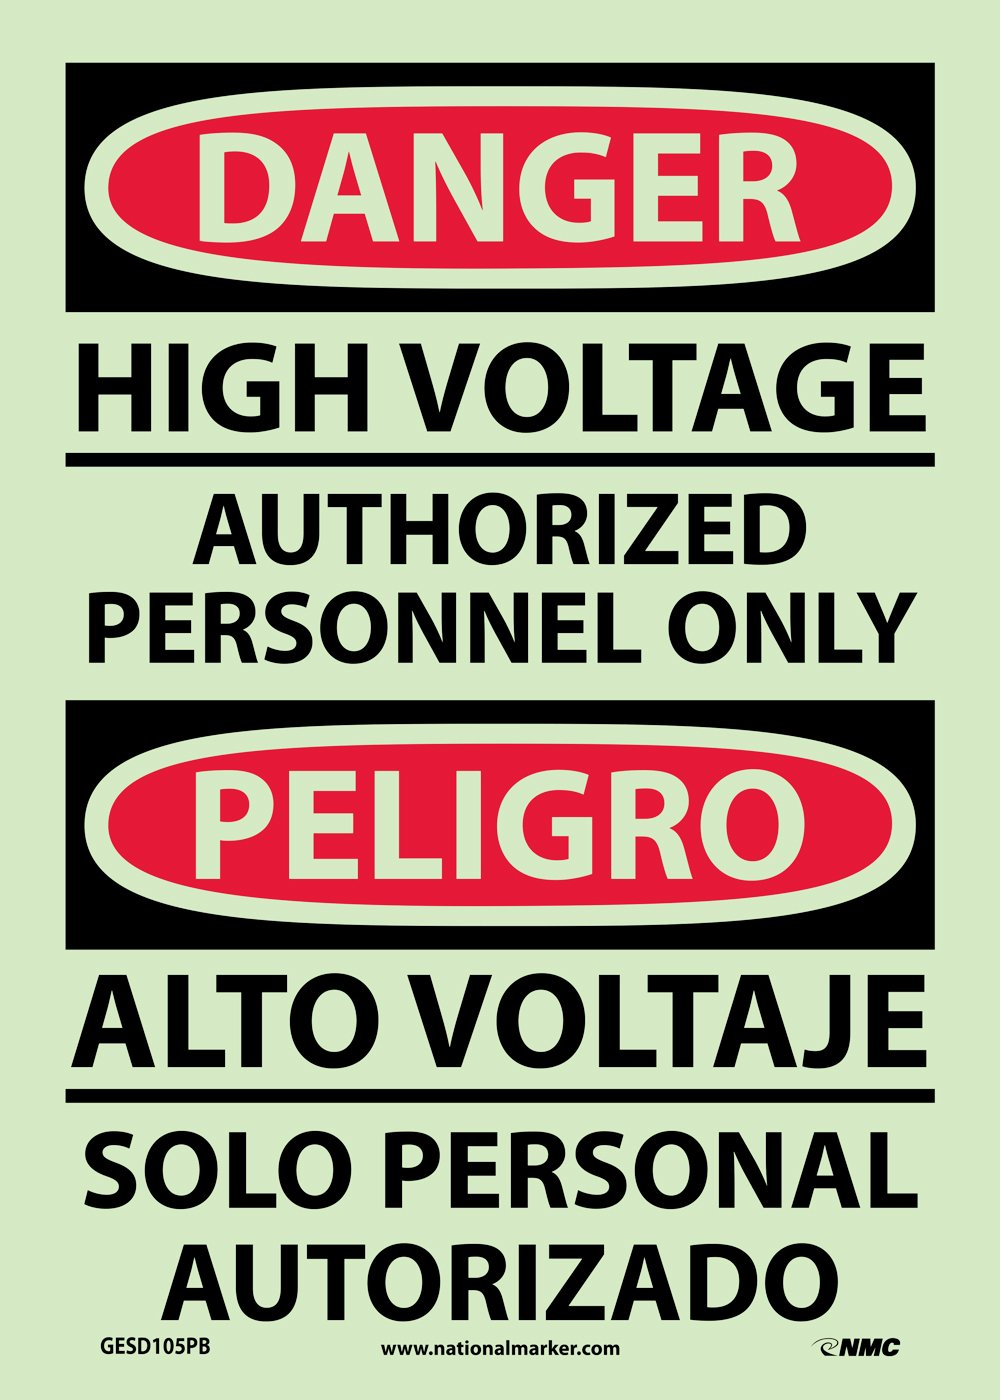 Black//Red on White HIGH VOLTAGE AUTHORIZED PERSONNEL ONLY Legend DANGER Glow Polyester NMC GESD105PB Bilingual OSHA Sign 10 Length x 14 Height